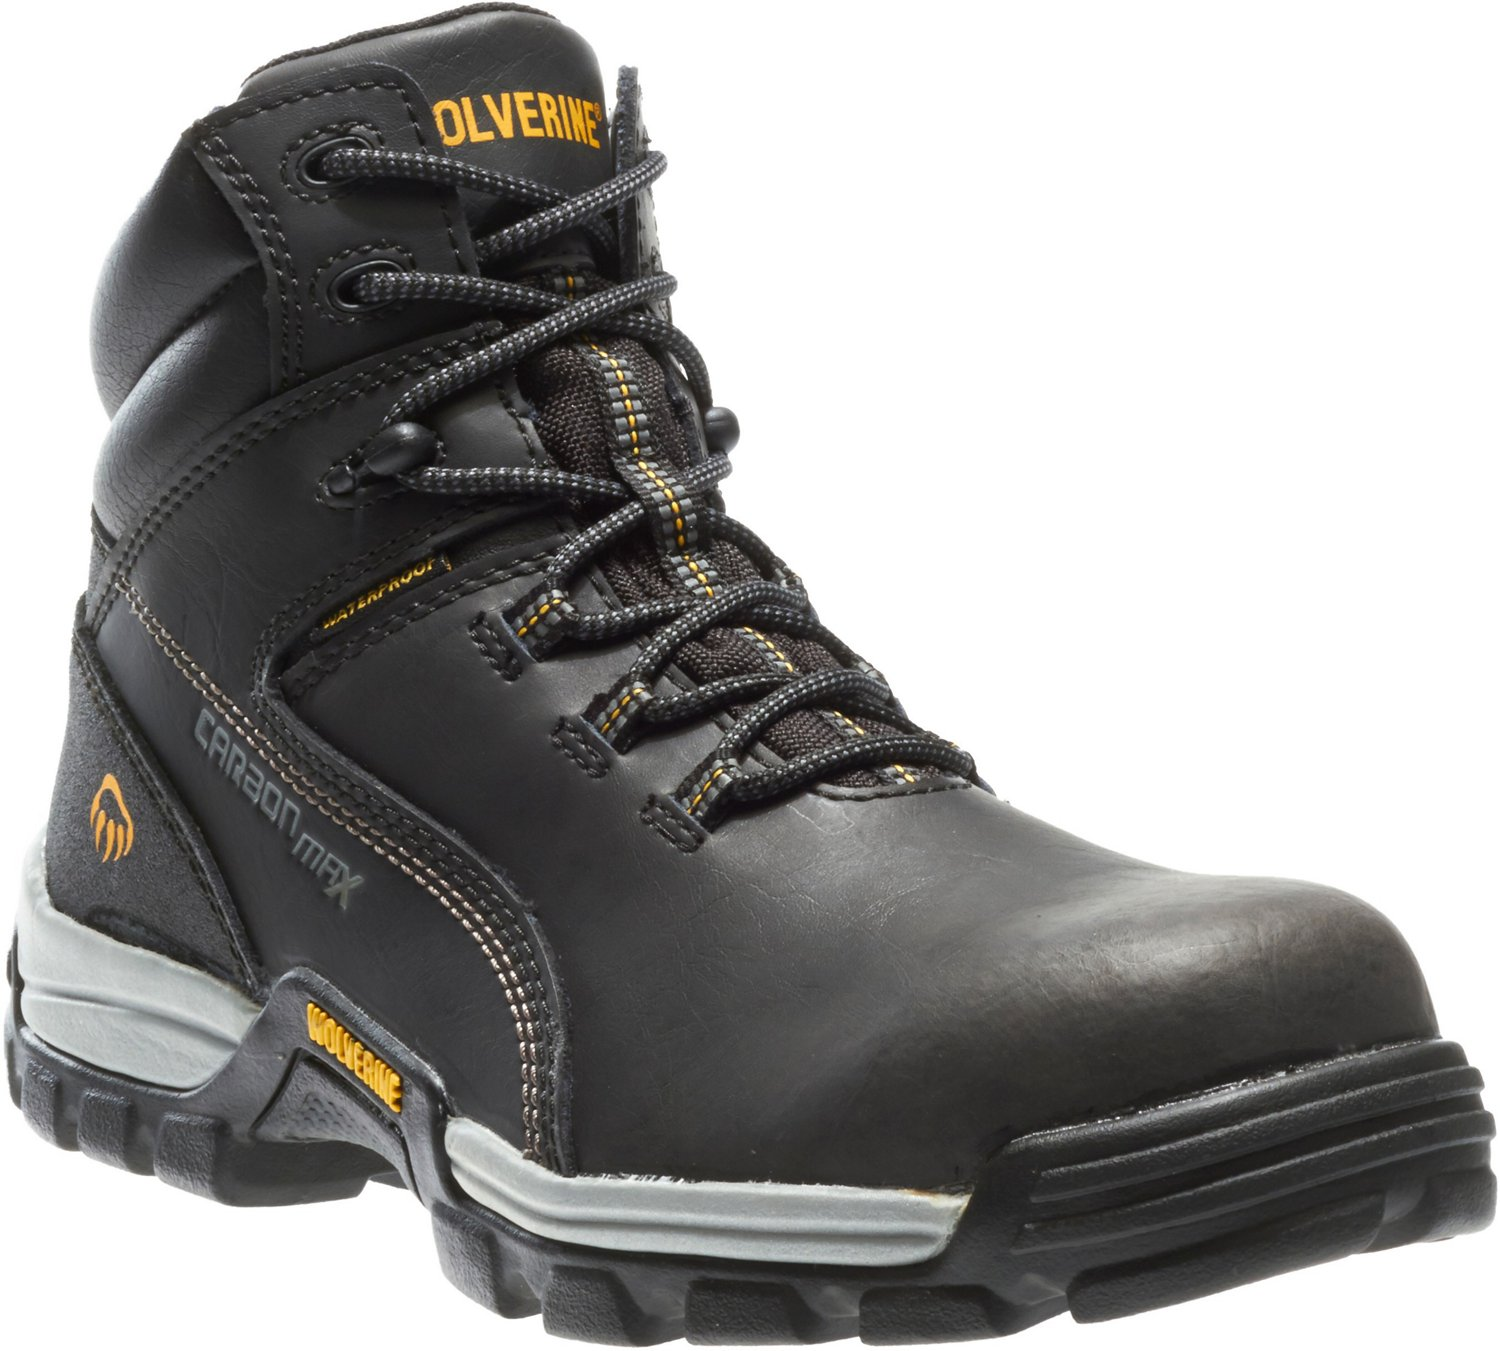 bcb1d913075 Wolverine Men's Tarmac Reflective 6 in EH Composite Toe 6 Lace Up Work Boots